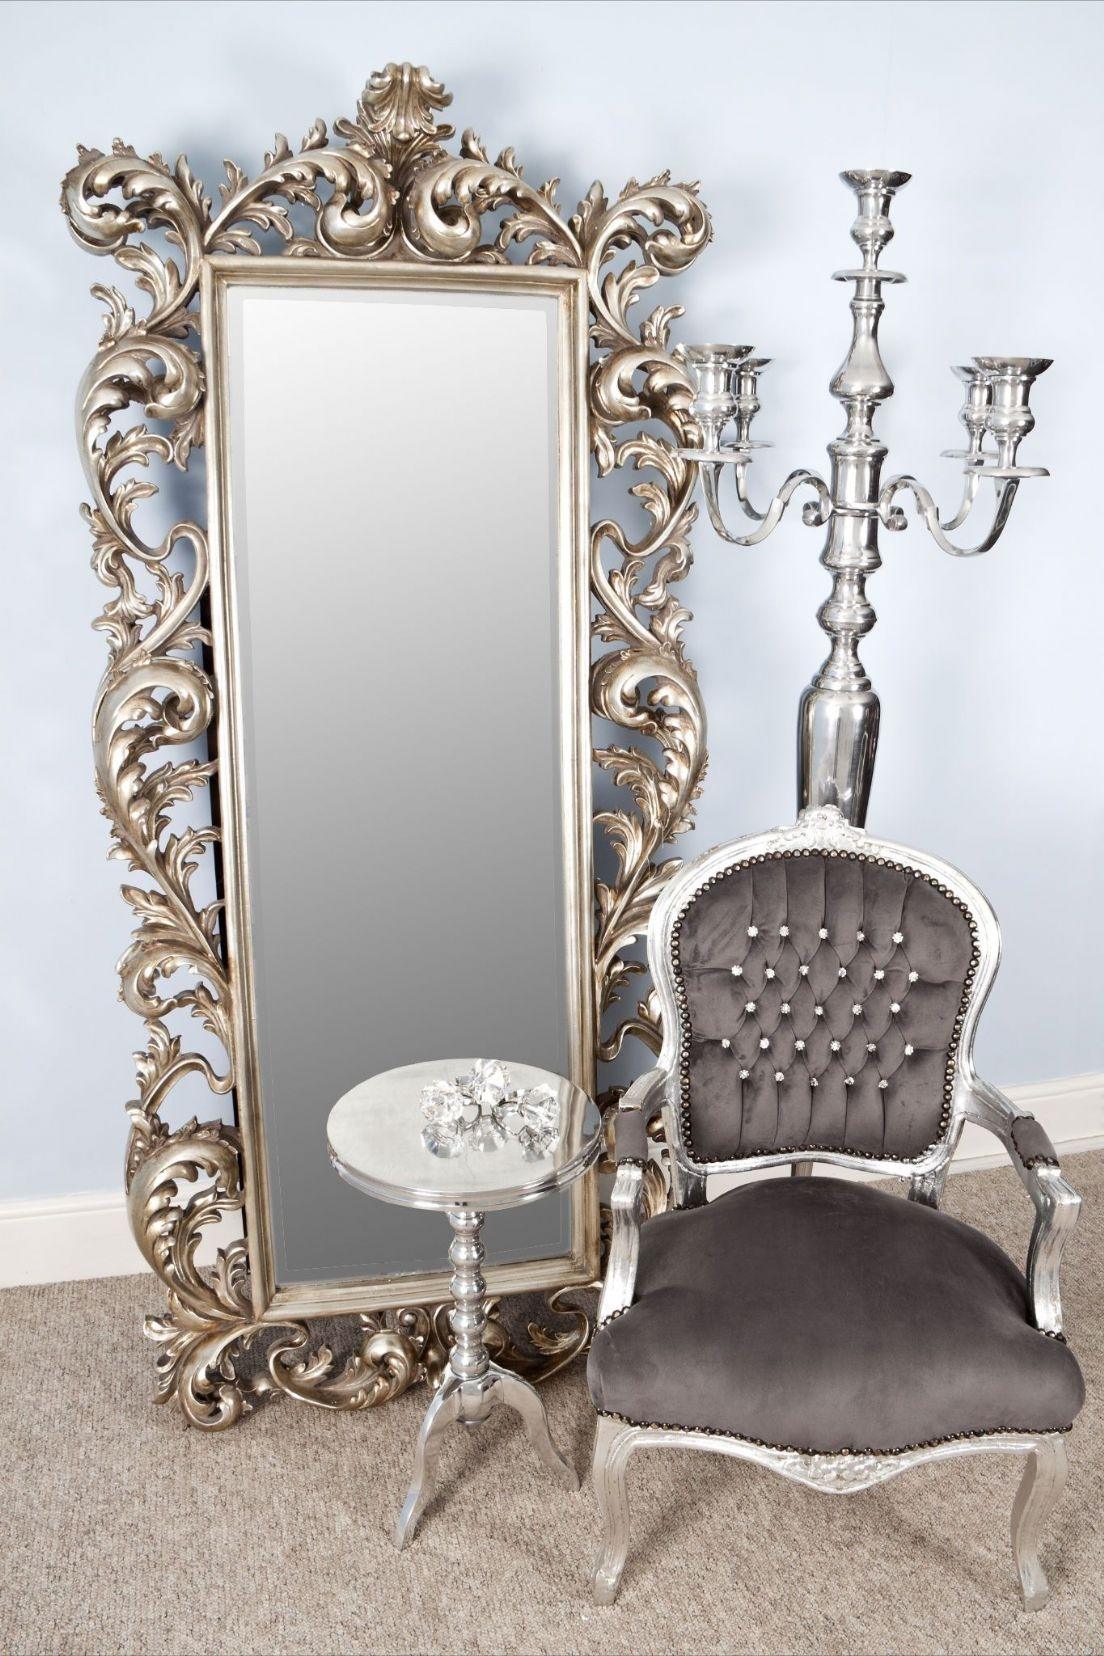 Rococo Mirrors Exclusive Mirrors Inside Large Ornate Mirrors For Sale (View 13 of 15)